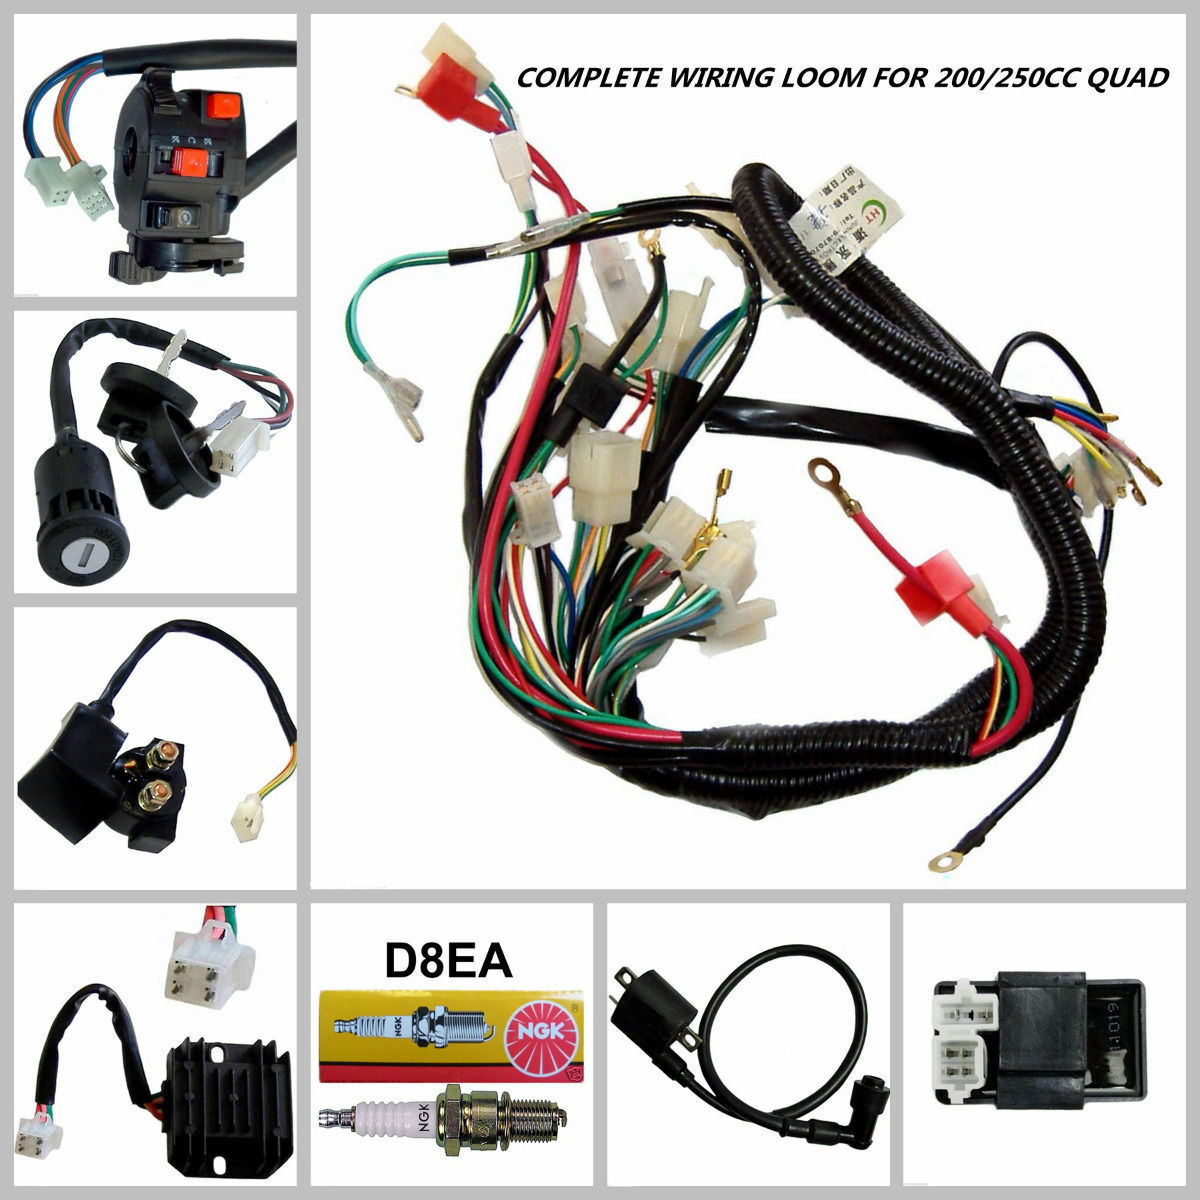 hight resolution of full motorcycle electrics wiring harness loom solenoid coil 250cc atv quad bike for sale online ebay